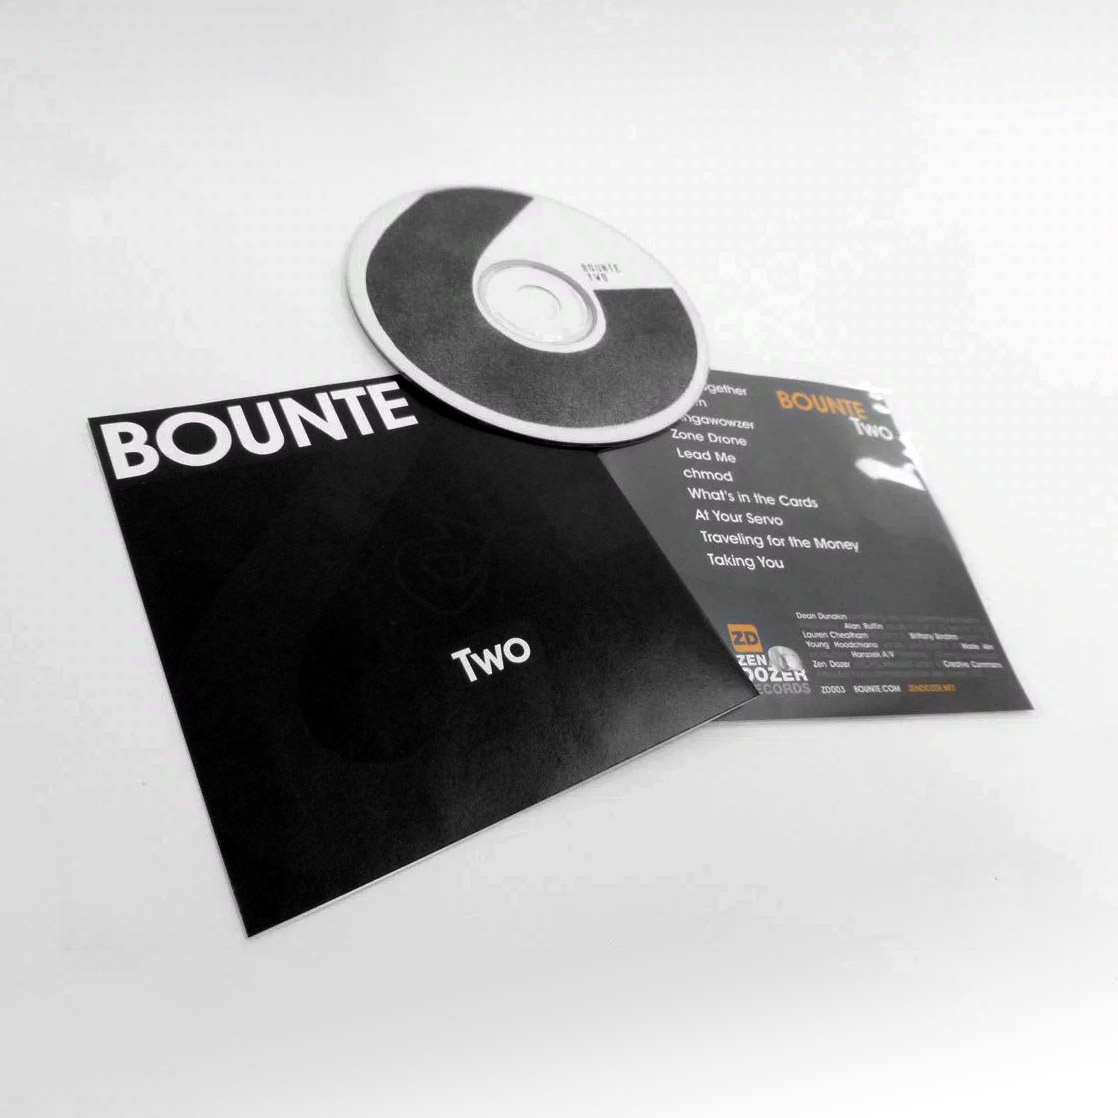 Bounte: Two CD